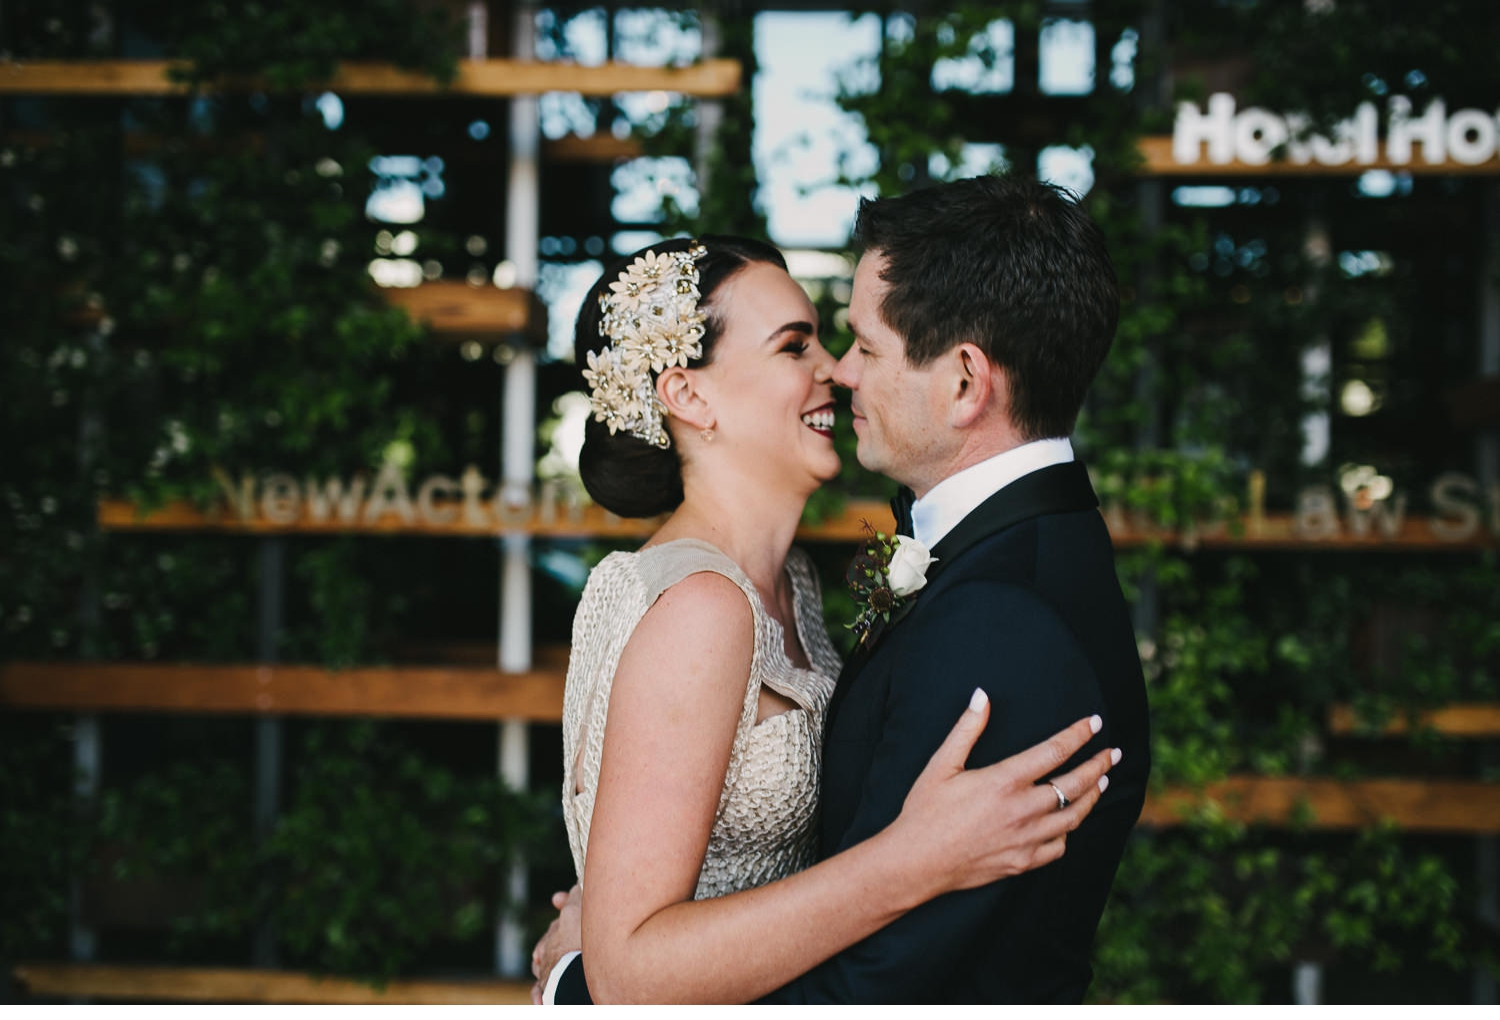 Morgan Roberts Photography_Wedding_nishi gallery hotel hotel_Jay and Lucy 1139.jpg